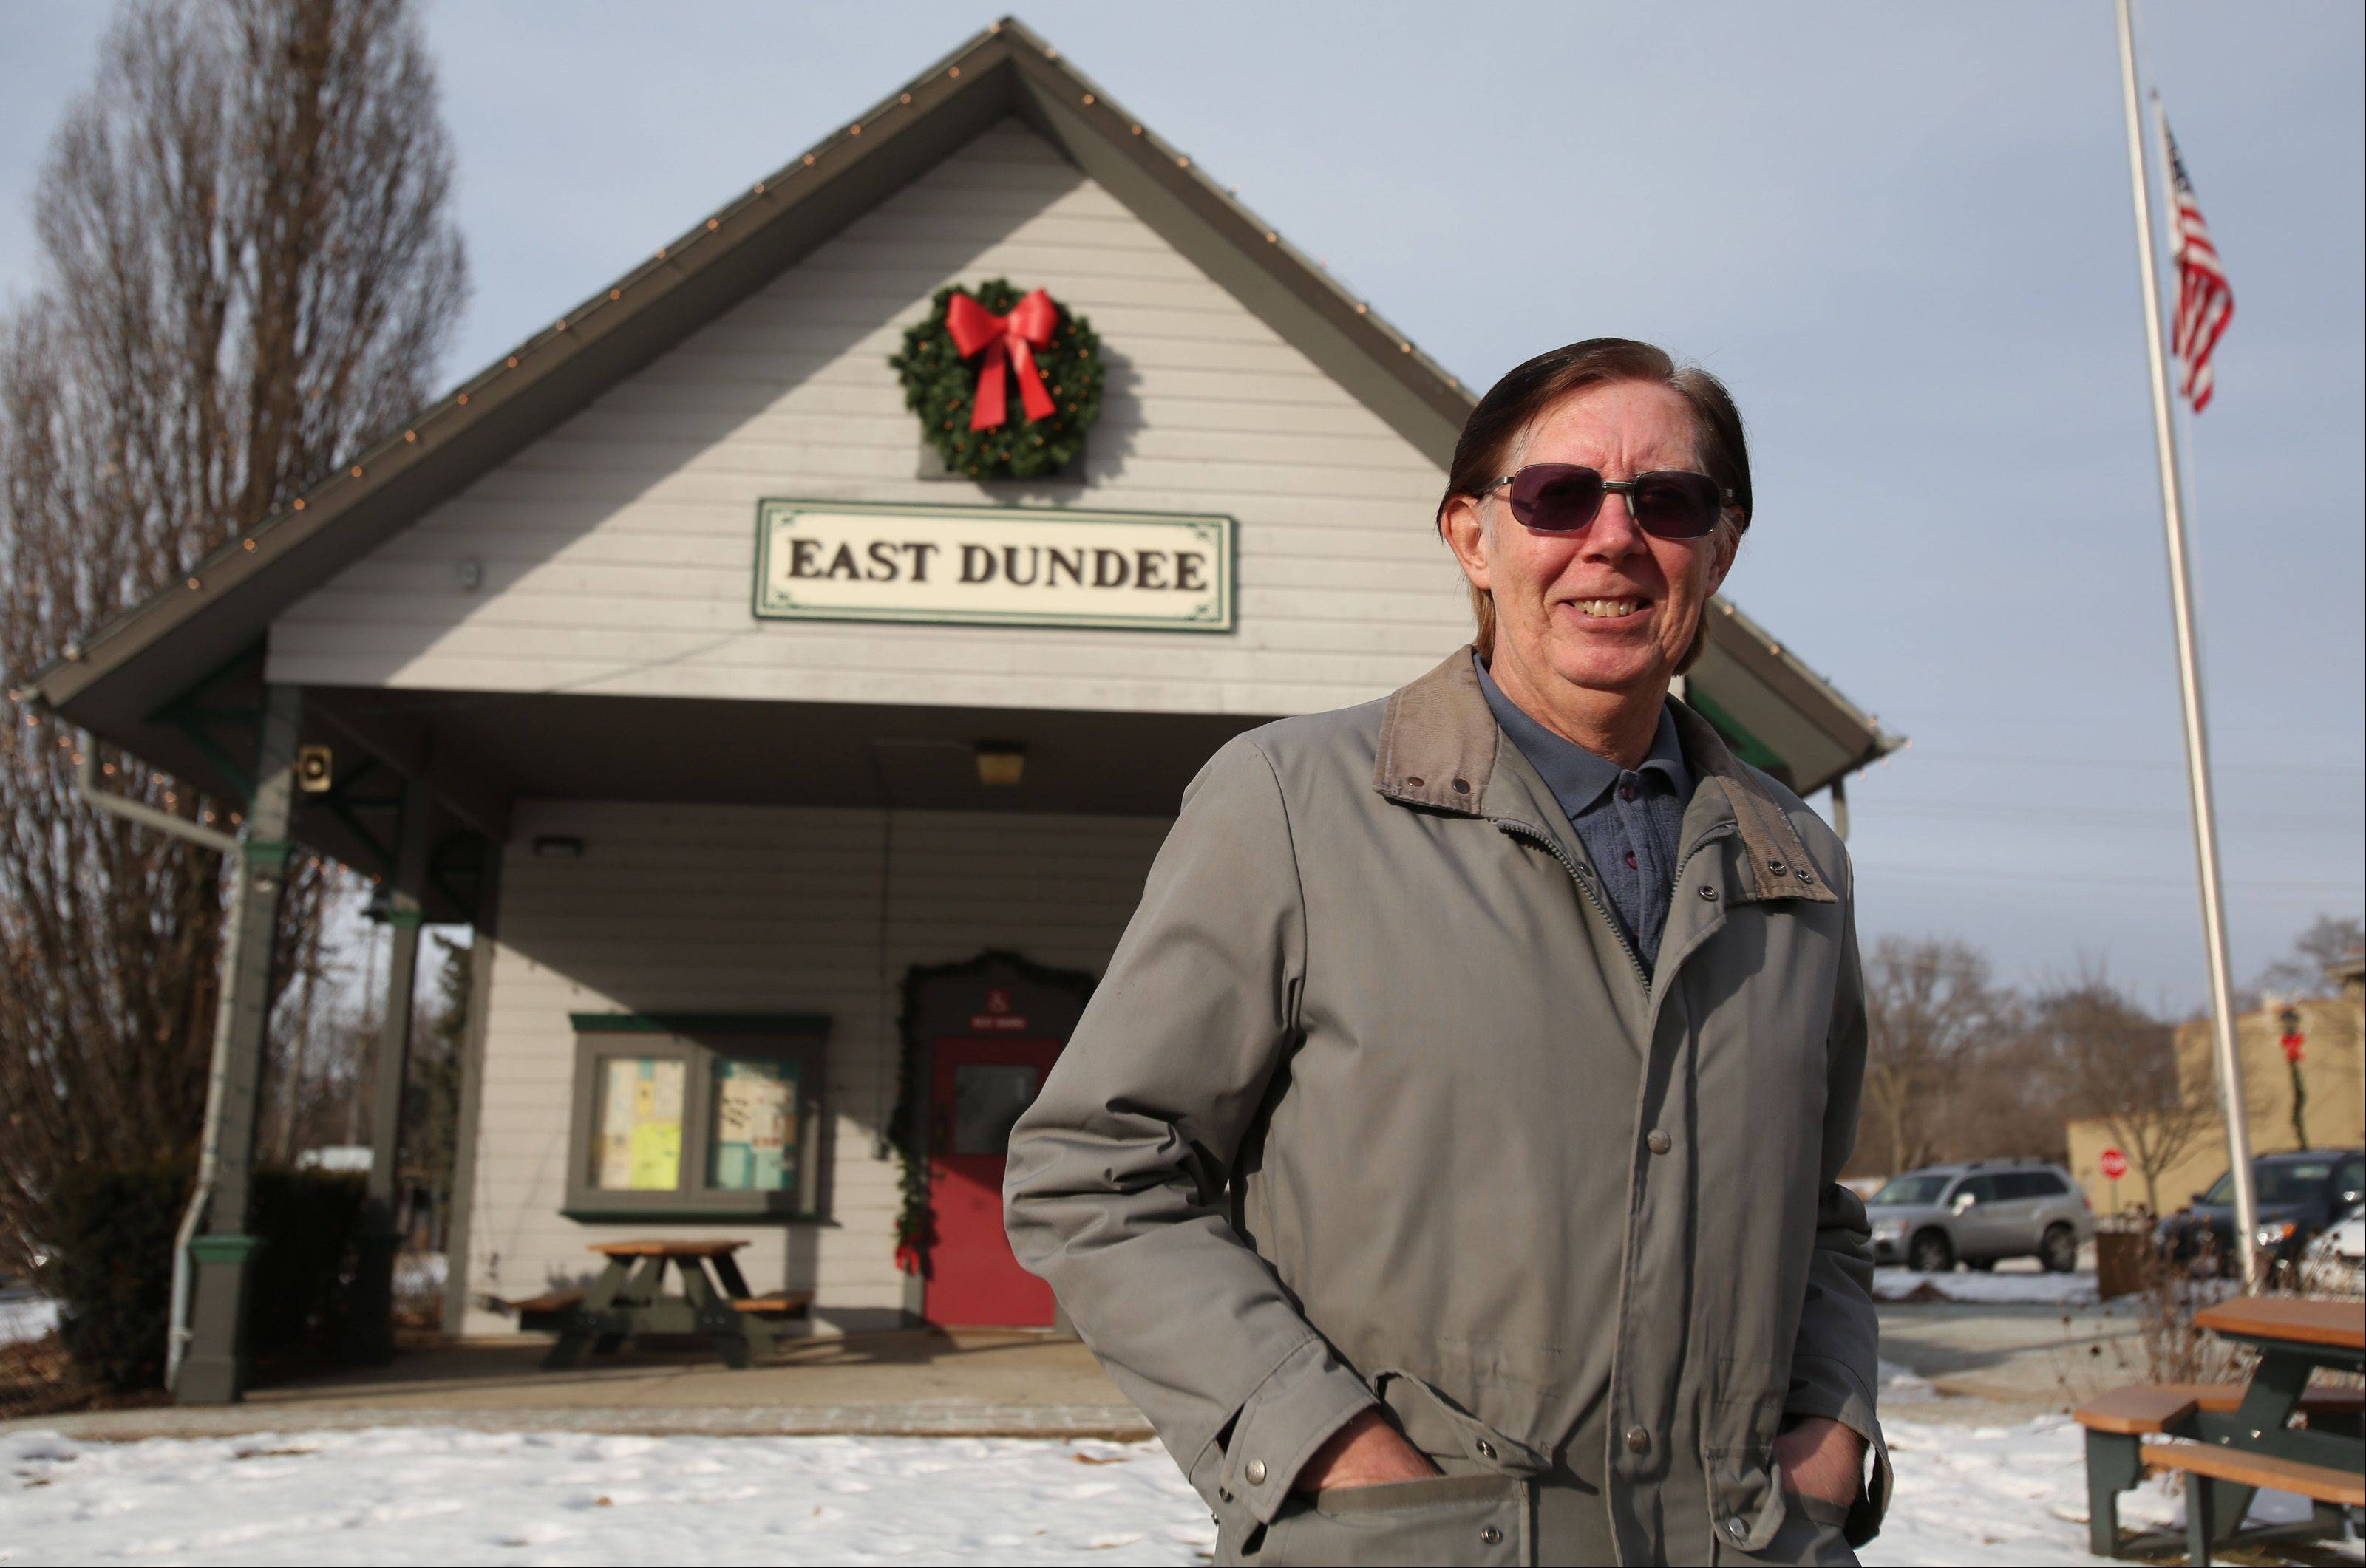 Bill Zelsdorf, of Carpentersville, recently received East Dundee's inaugural community service award for his work at the Dundee Township Visitor's Center, also known as The Depot, in East Dundee. Zelsdorf has been affiliated with The Depot for 17 years as a board member, manager and contest coordinator.